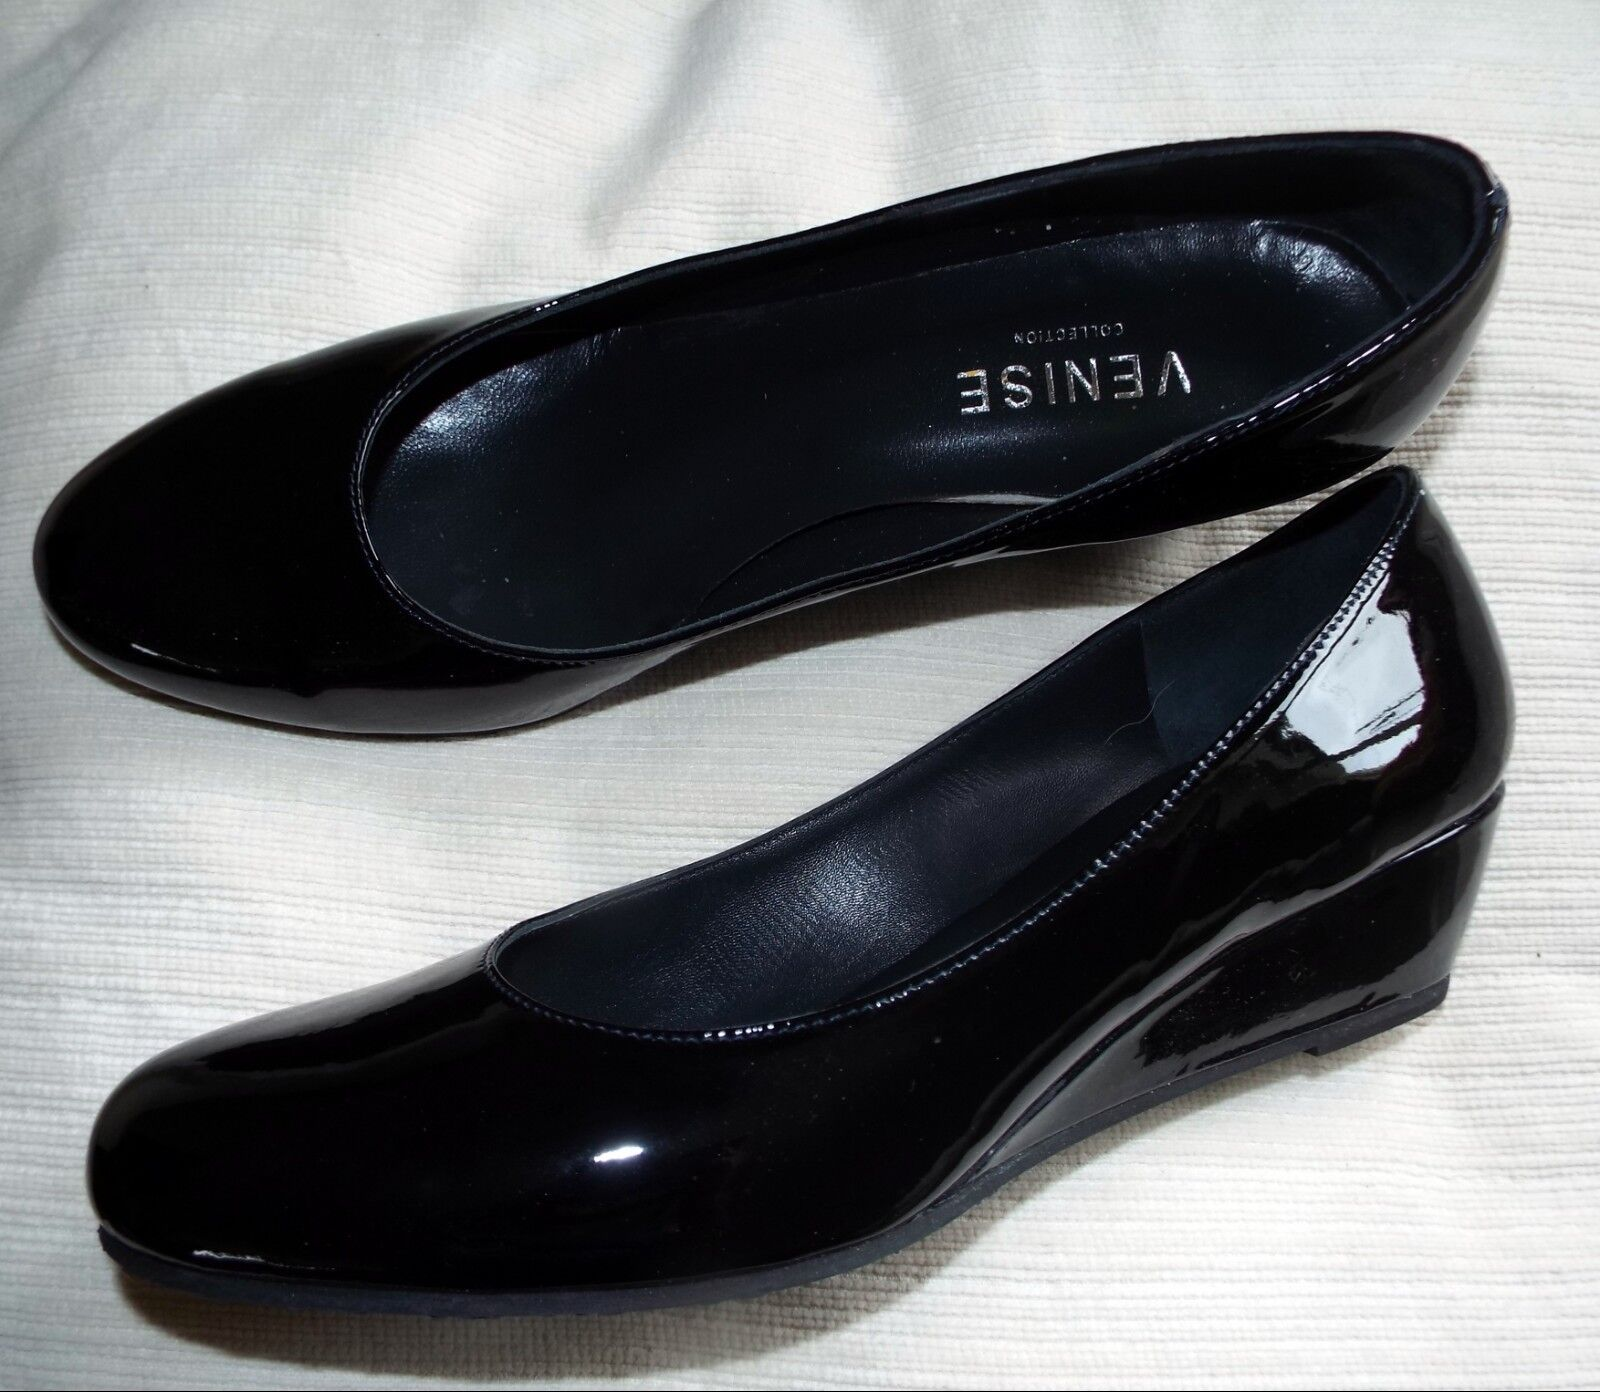 Venise Collection black patent leather court shoes, low wedge, size 40.5